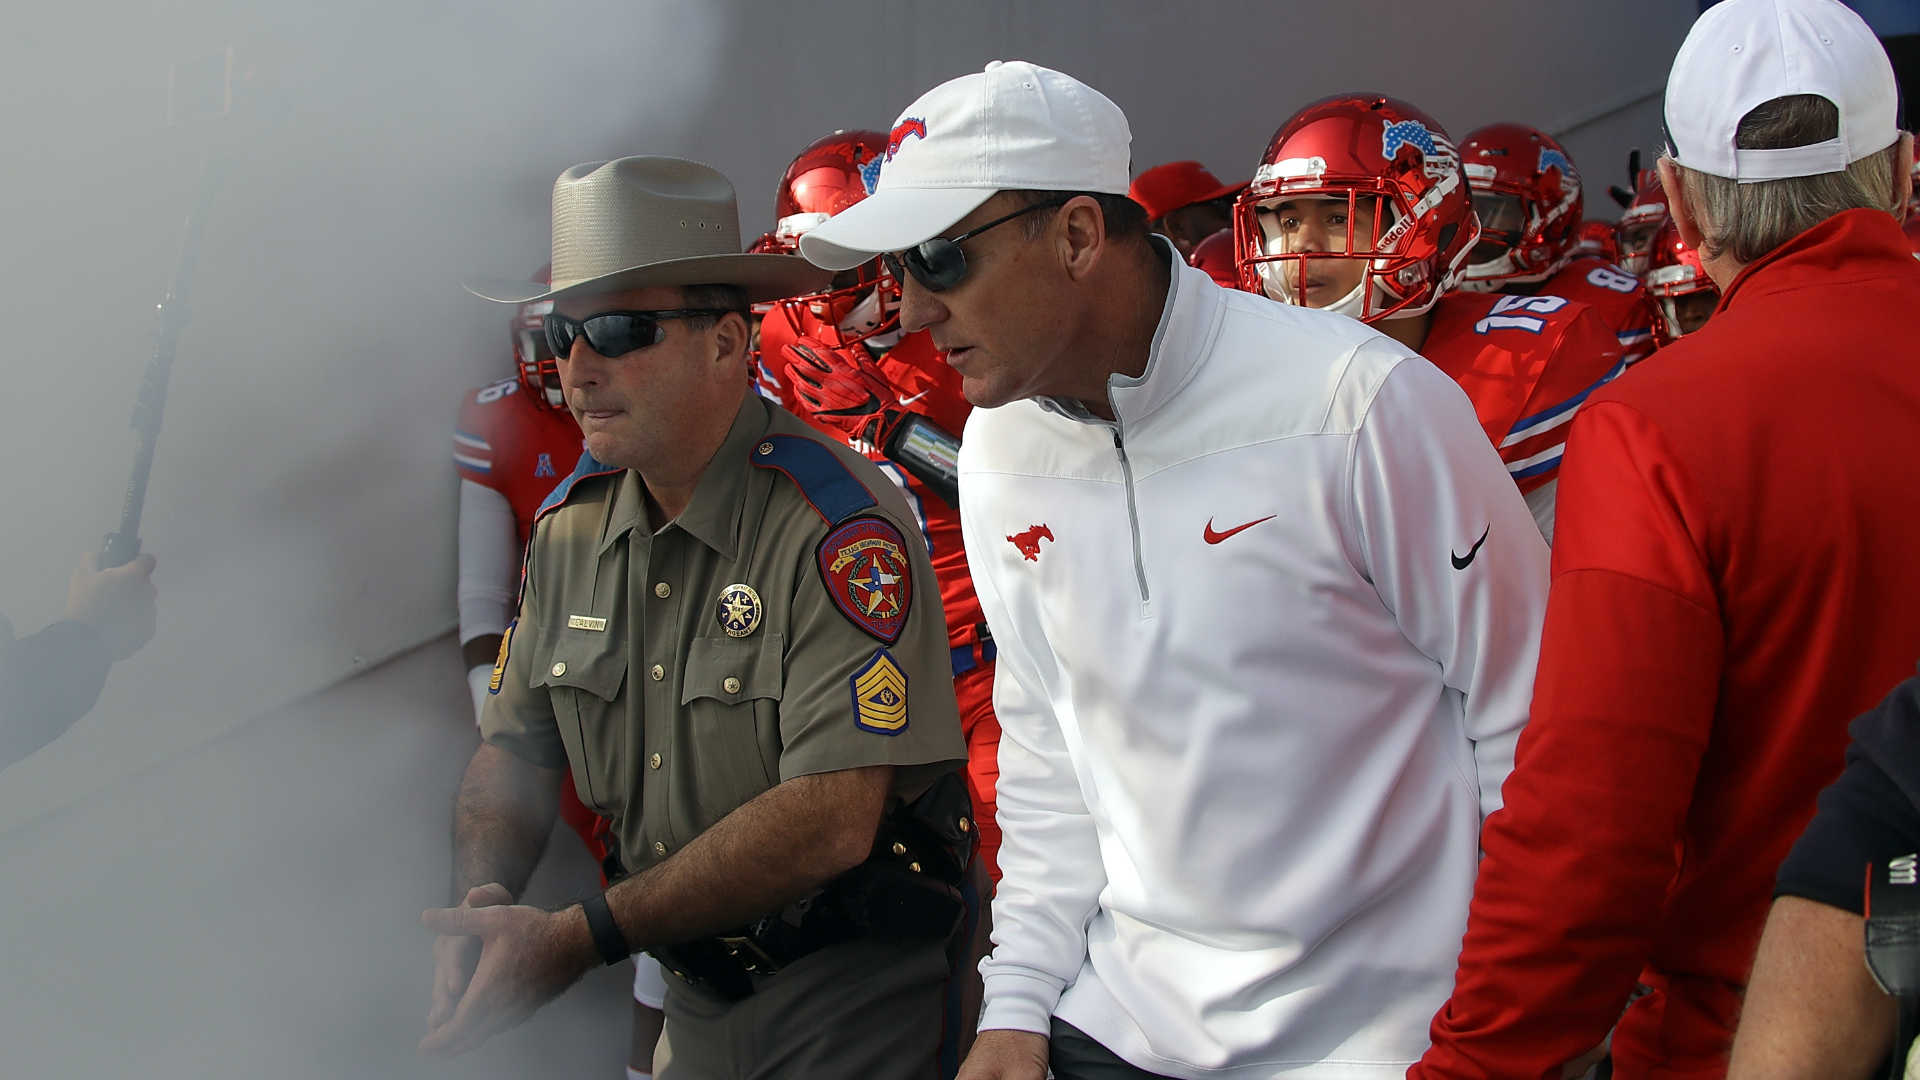 Arkansas hires SMU coach Chad Morris, agreeing to six-year, $21M contract